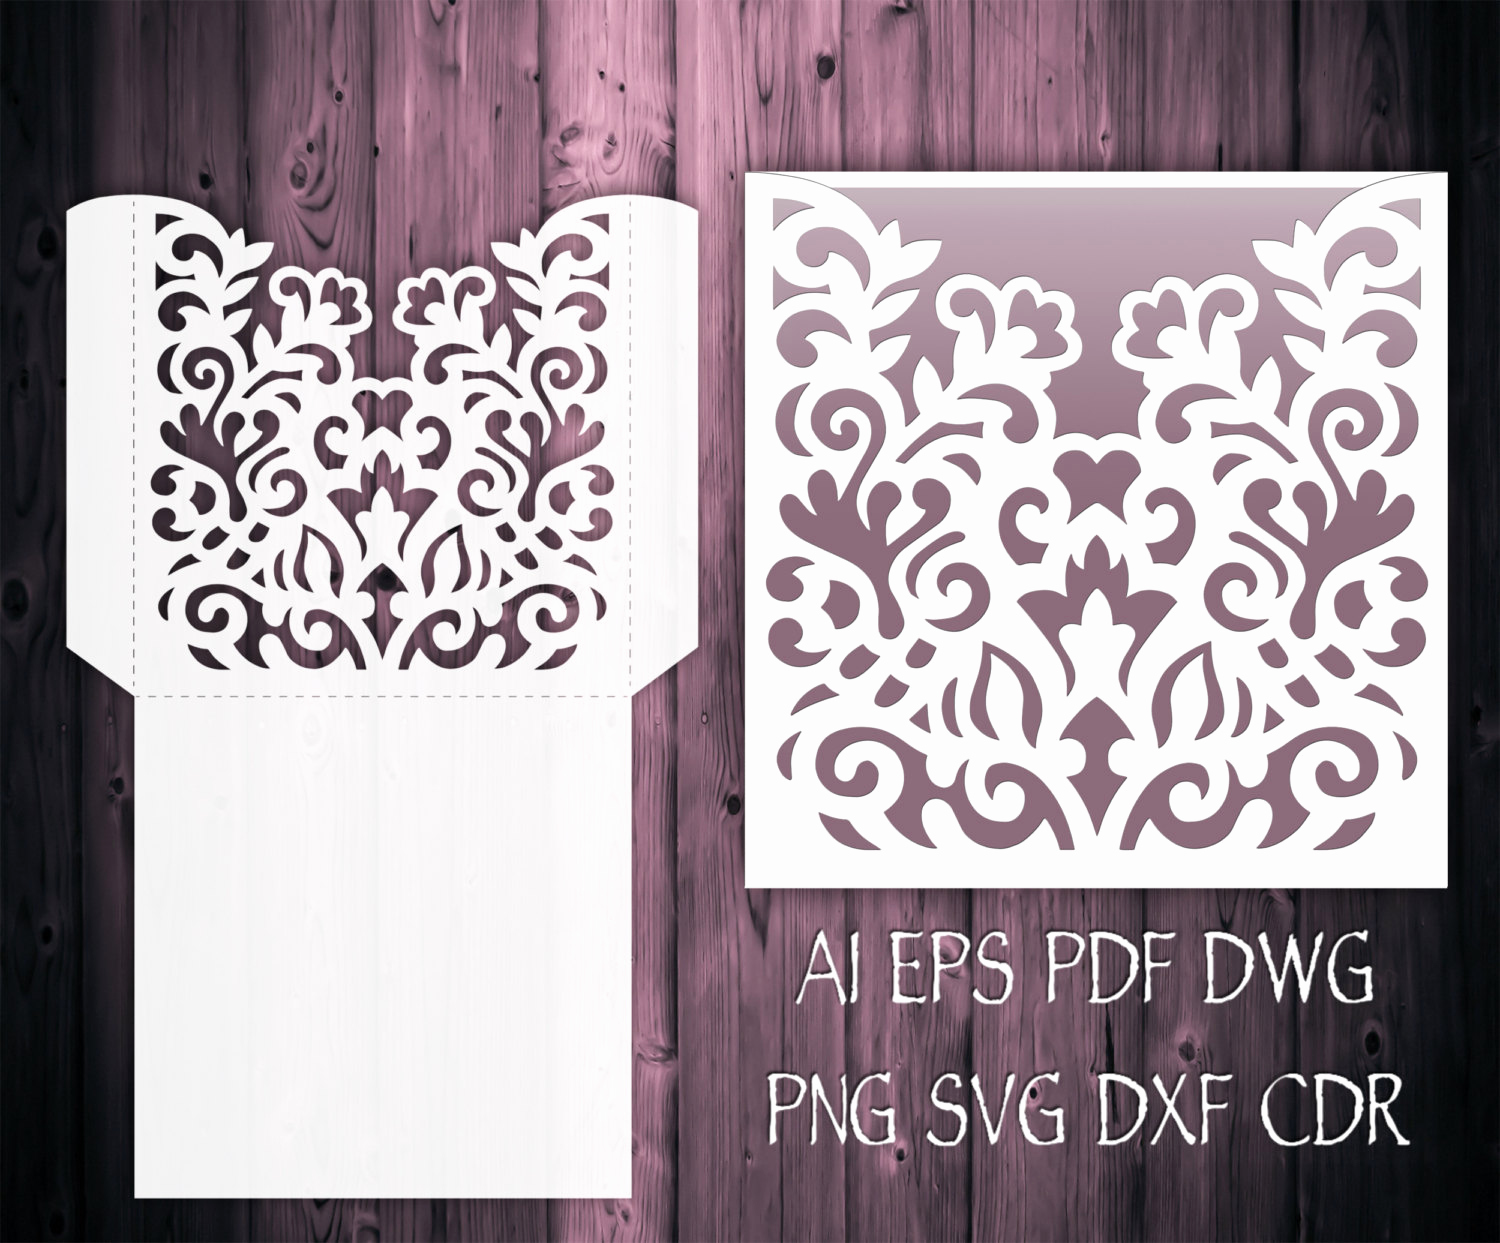 Wedding Invitation Svg Files Awesome Wedding Invitation Pocket Envelope 5x7 & 5x5 Svg Template